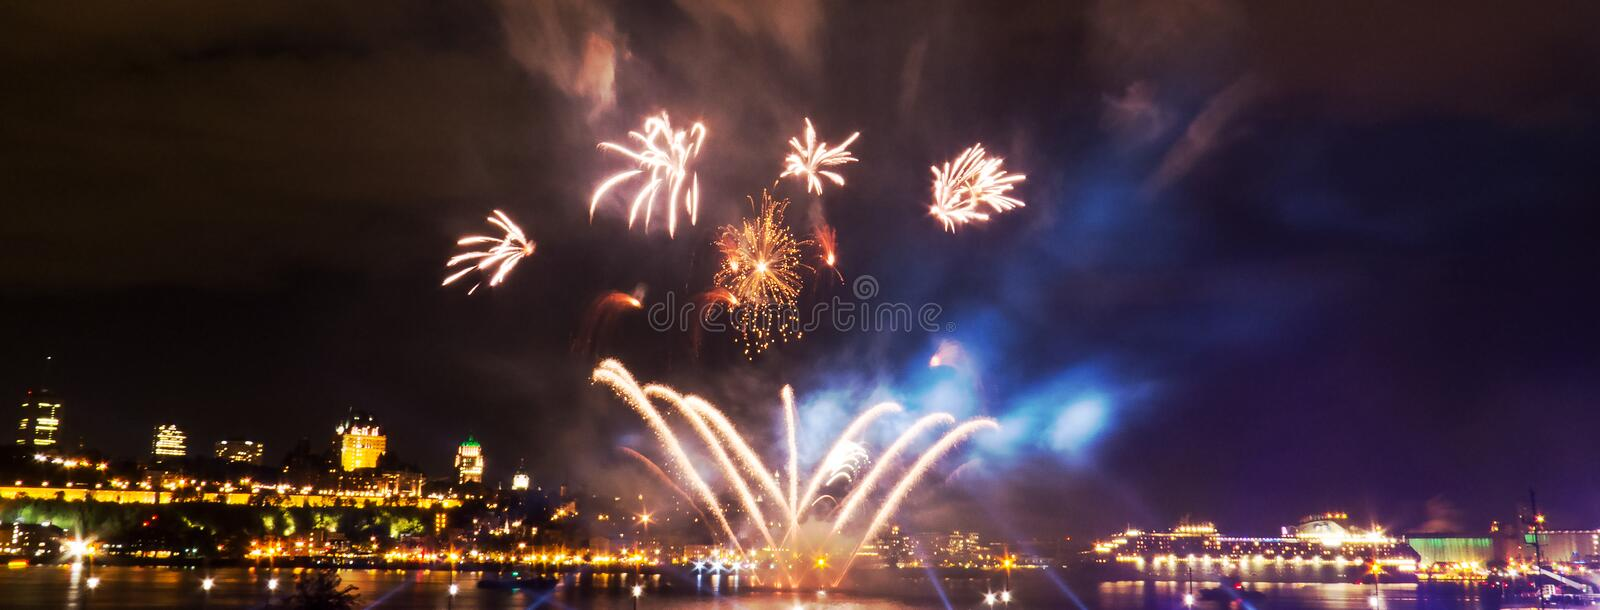 Panoramic photo: Small fireworks over a big river stock photo